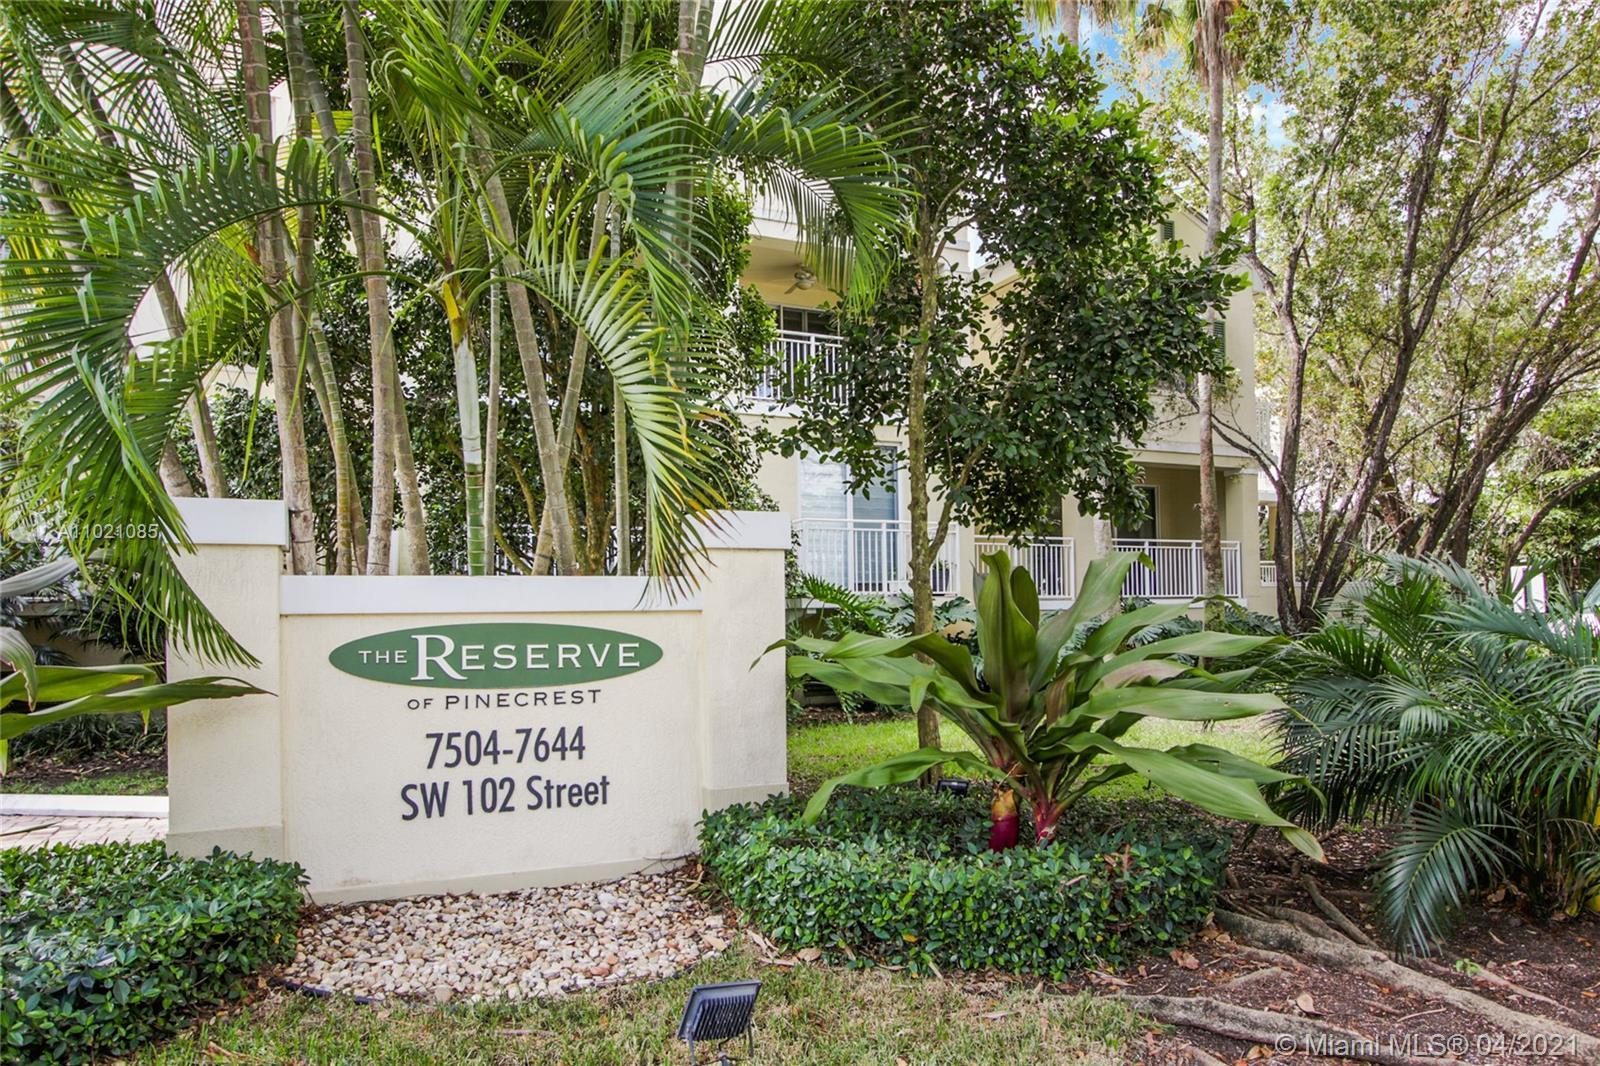 Largest 2,226 sq. ft. unit at The Reserve of Pinecrest, Key West style gated community consisting of